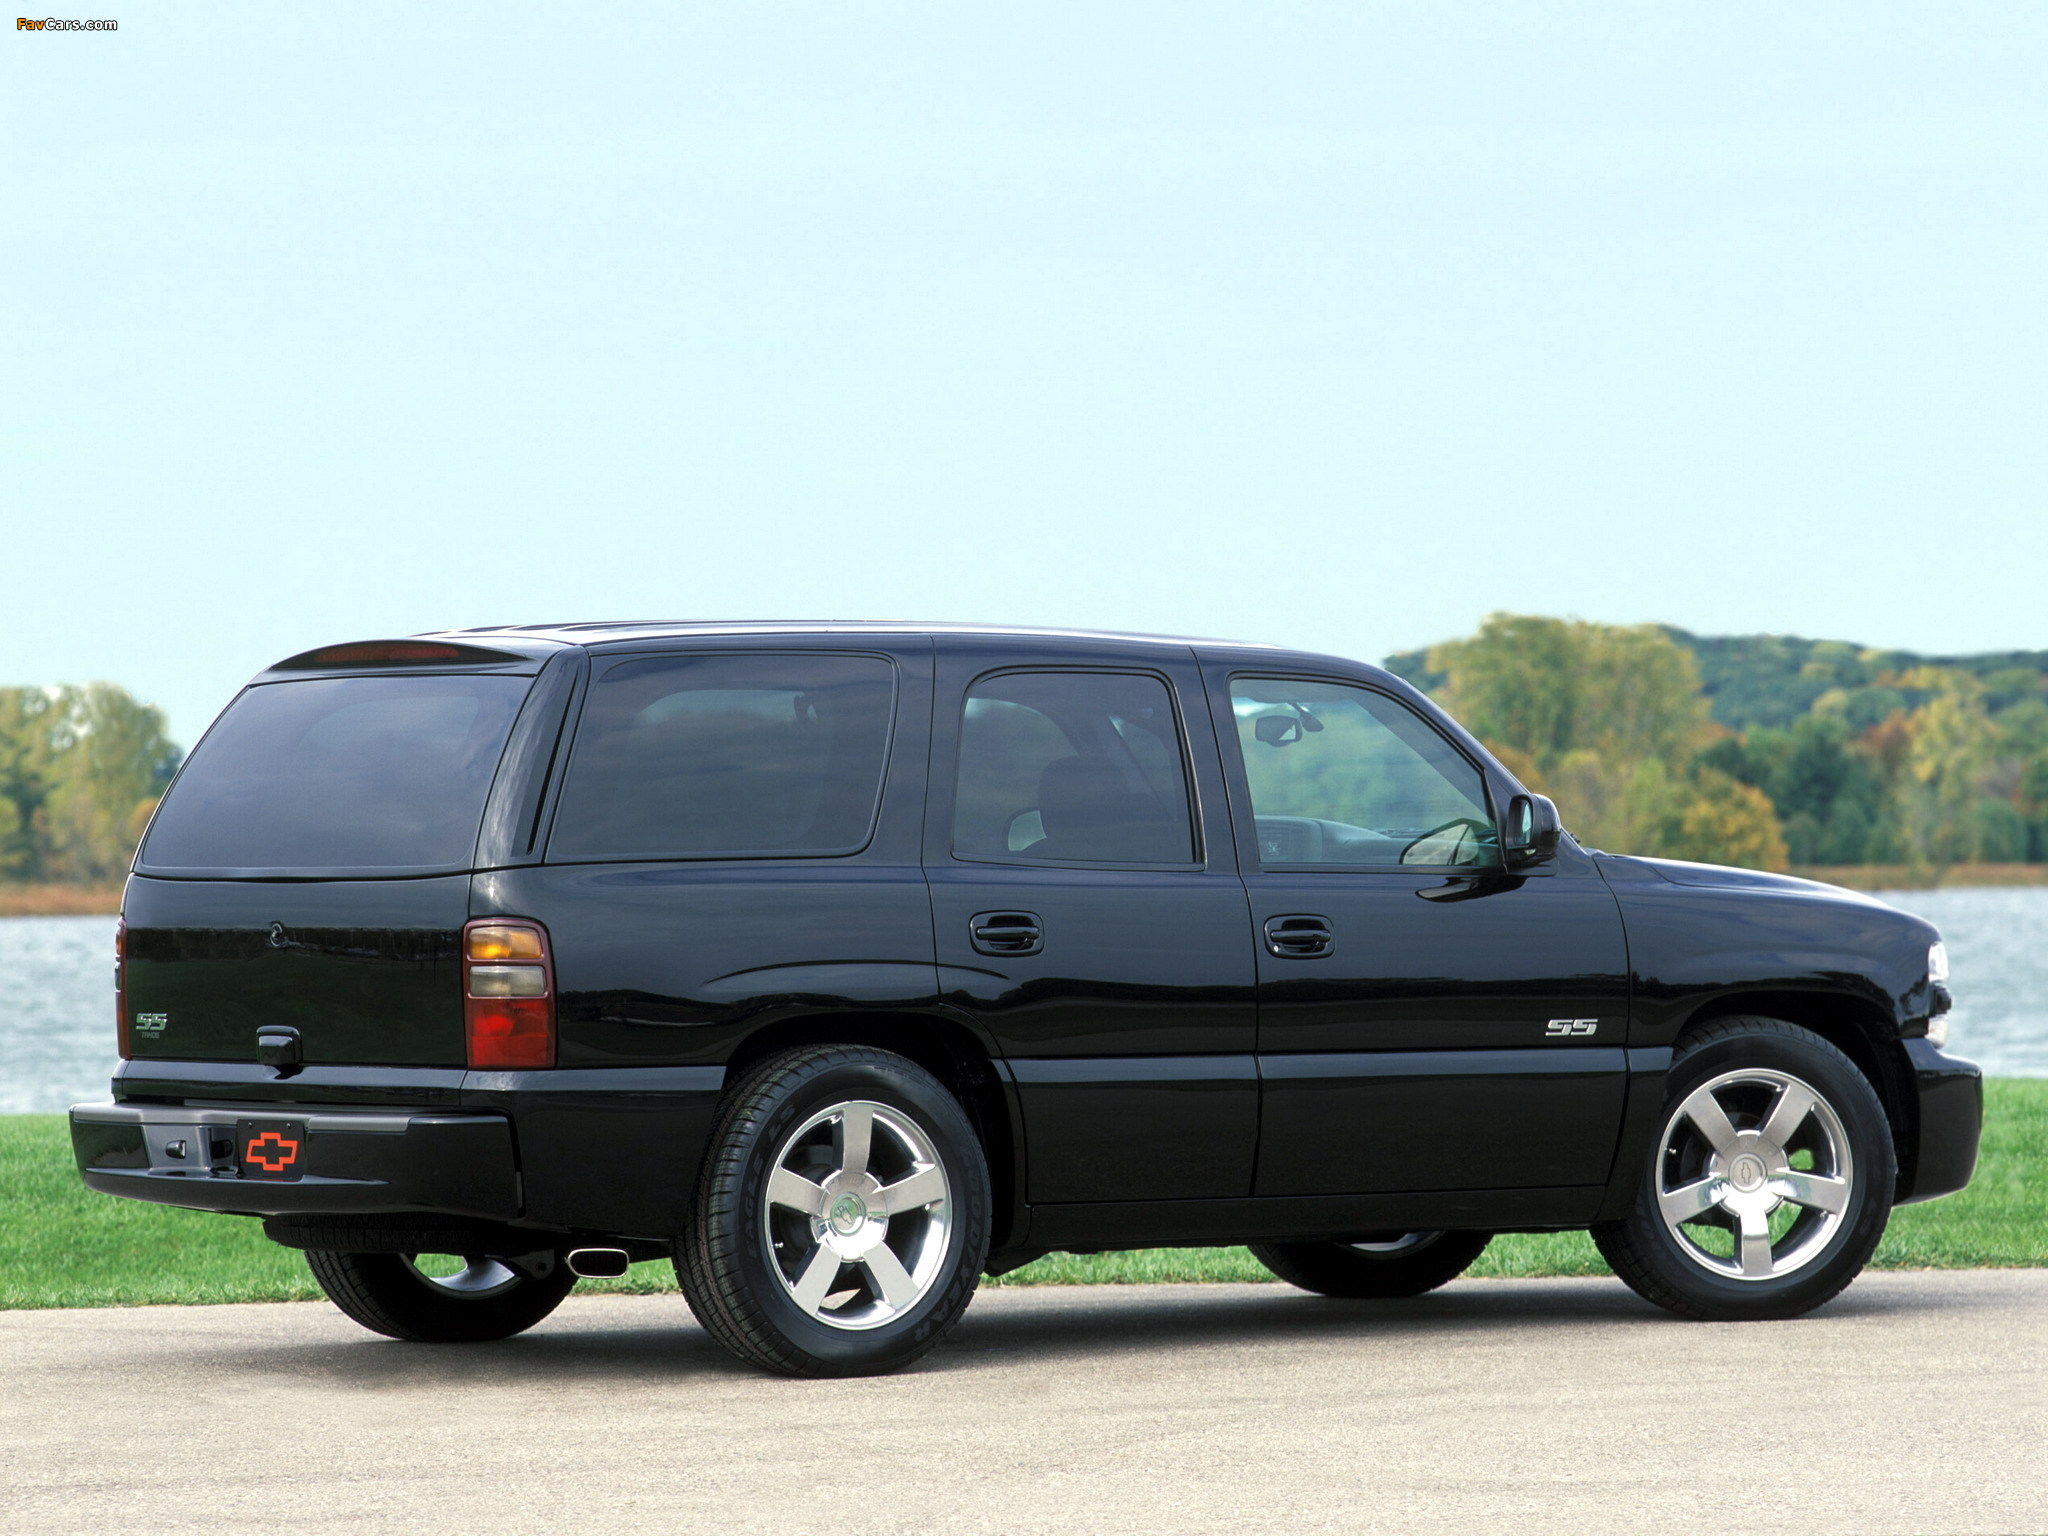 chevrolet tahoe (gmt840) 2002 images #2